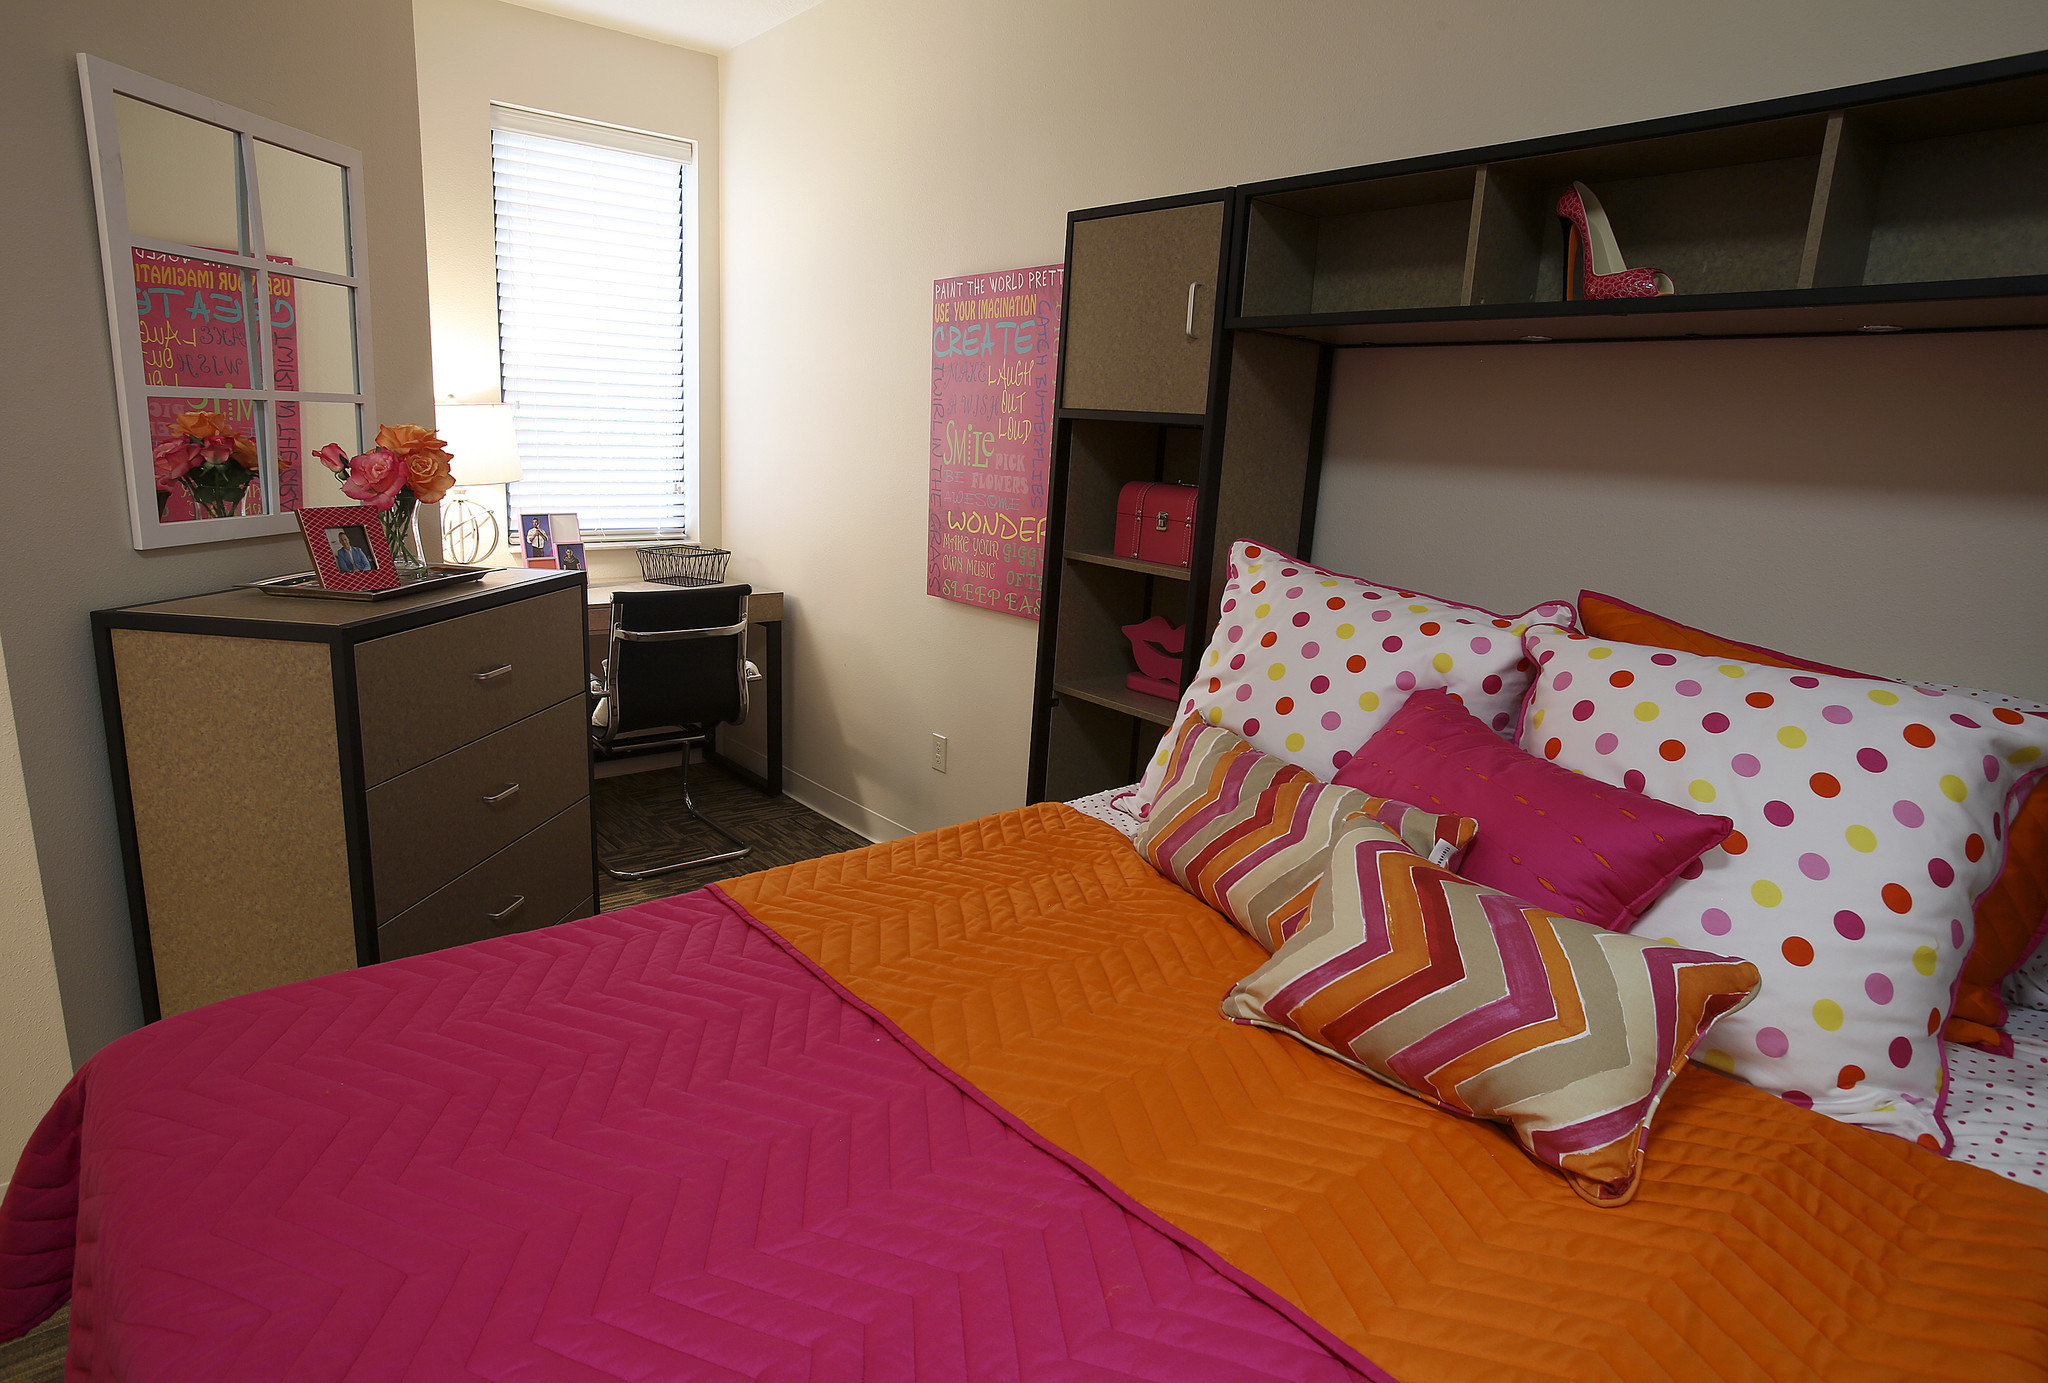 The. Pictures Northview Ucf Orlando Sentinel River Park Apartments